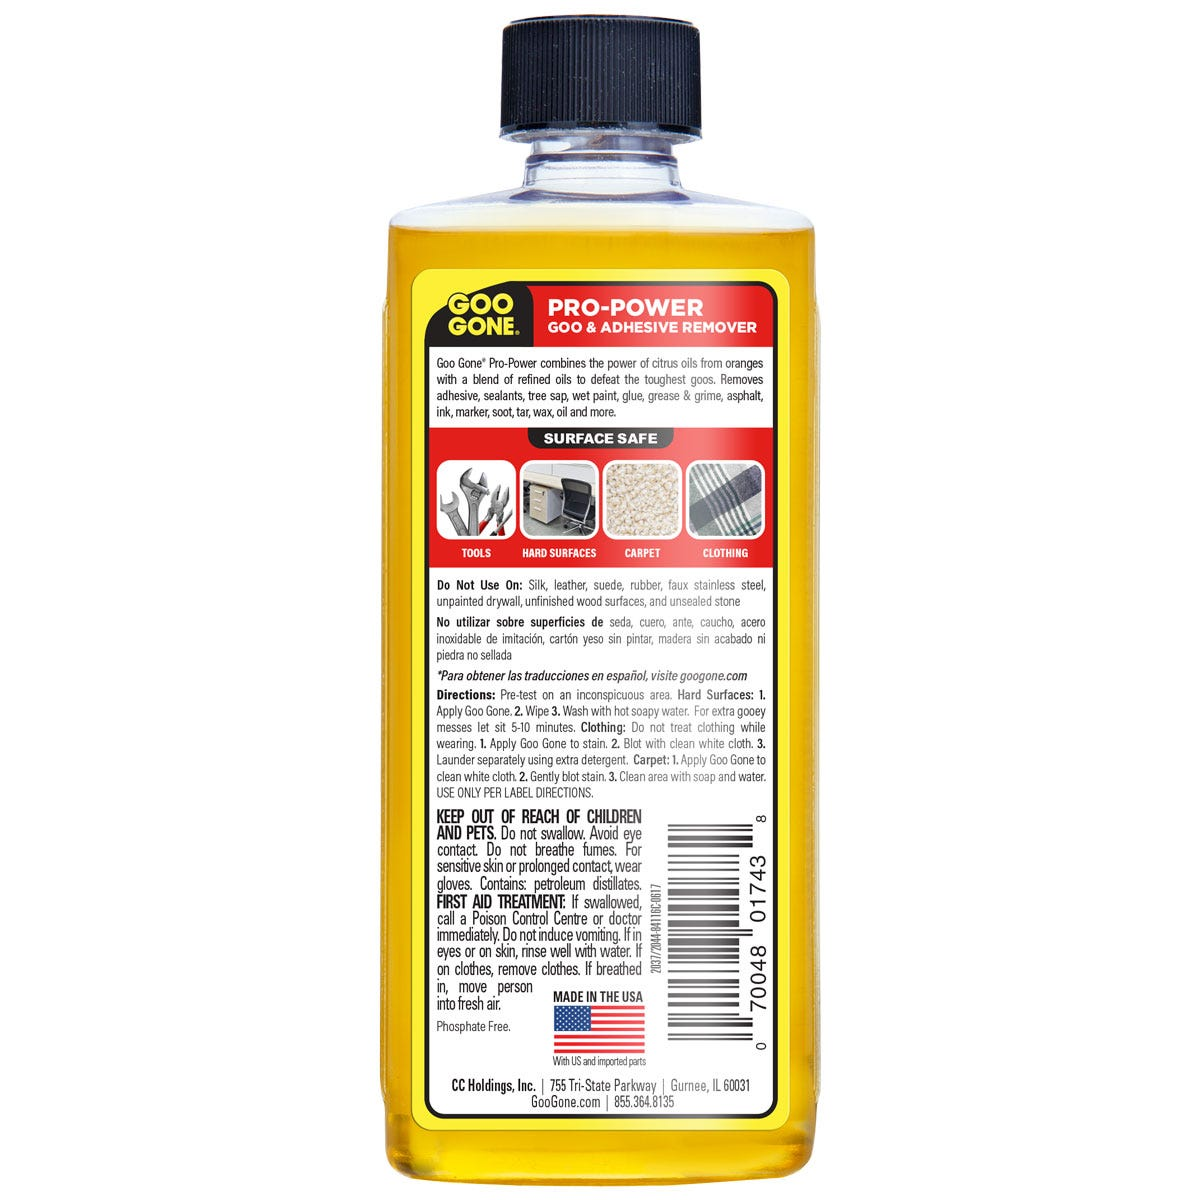 Professional Adhesive Remover back label